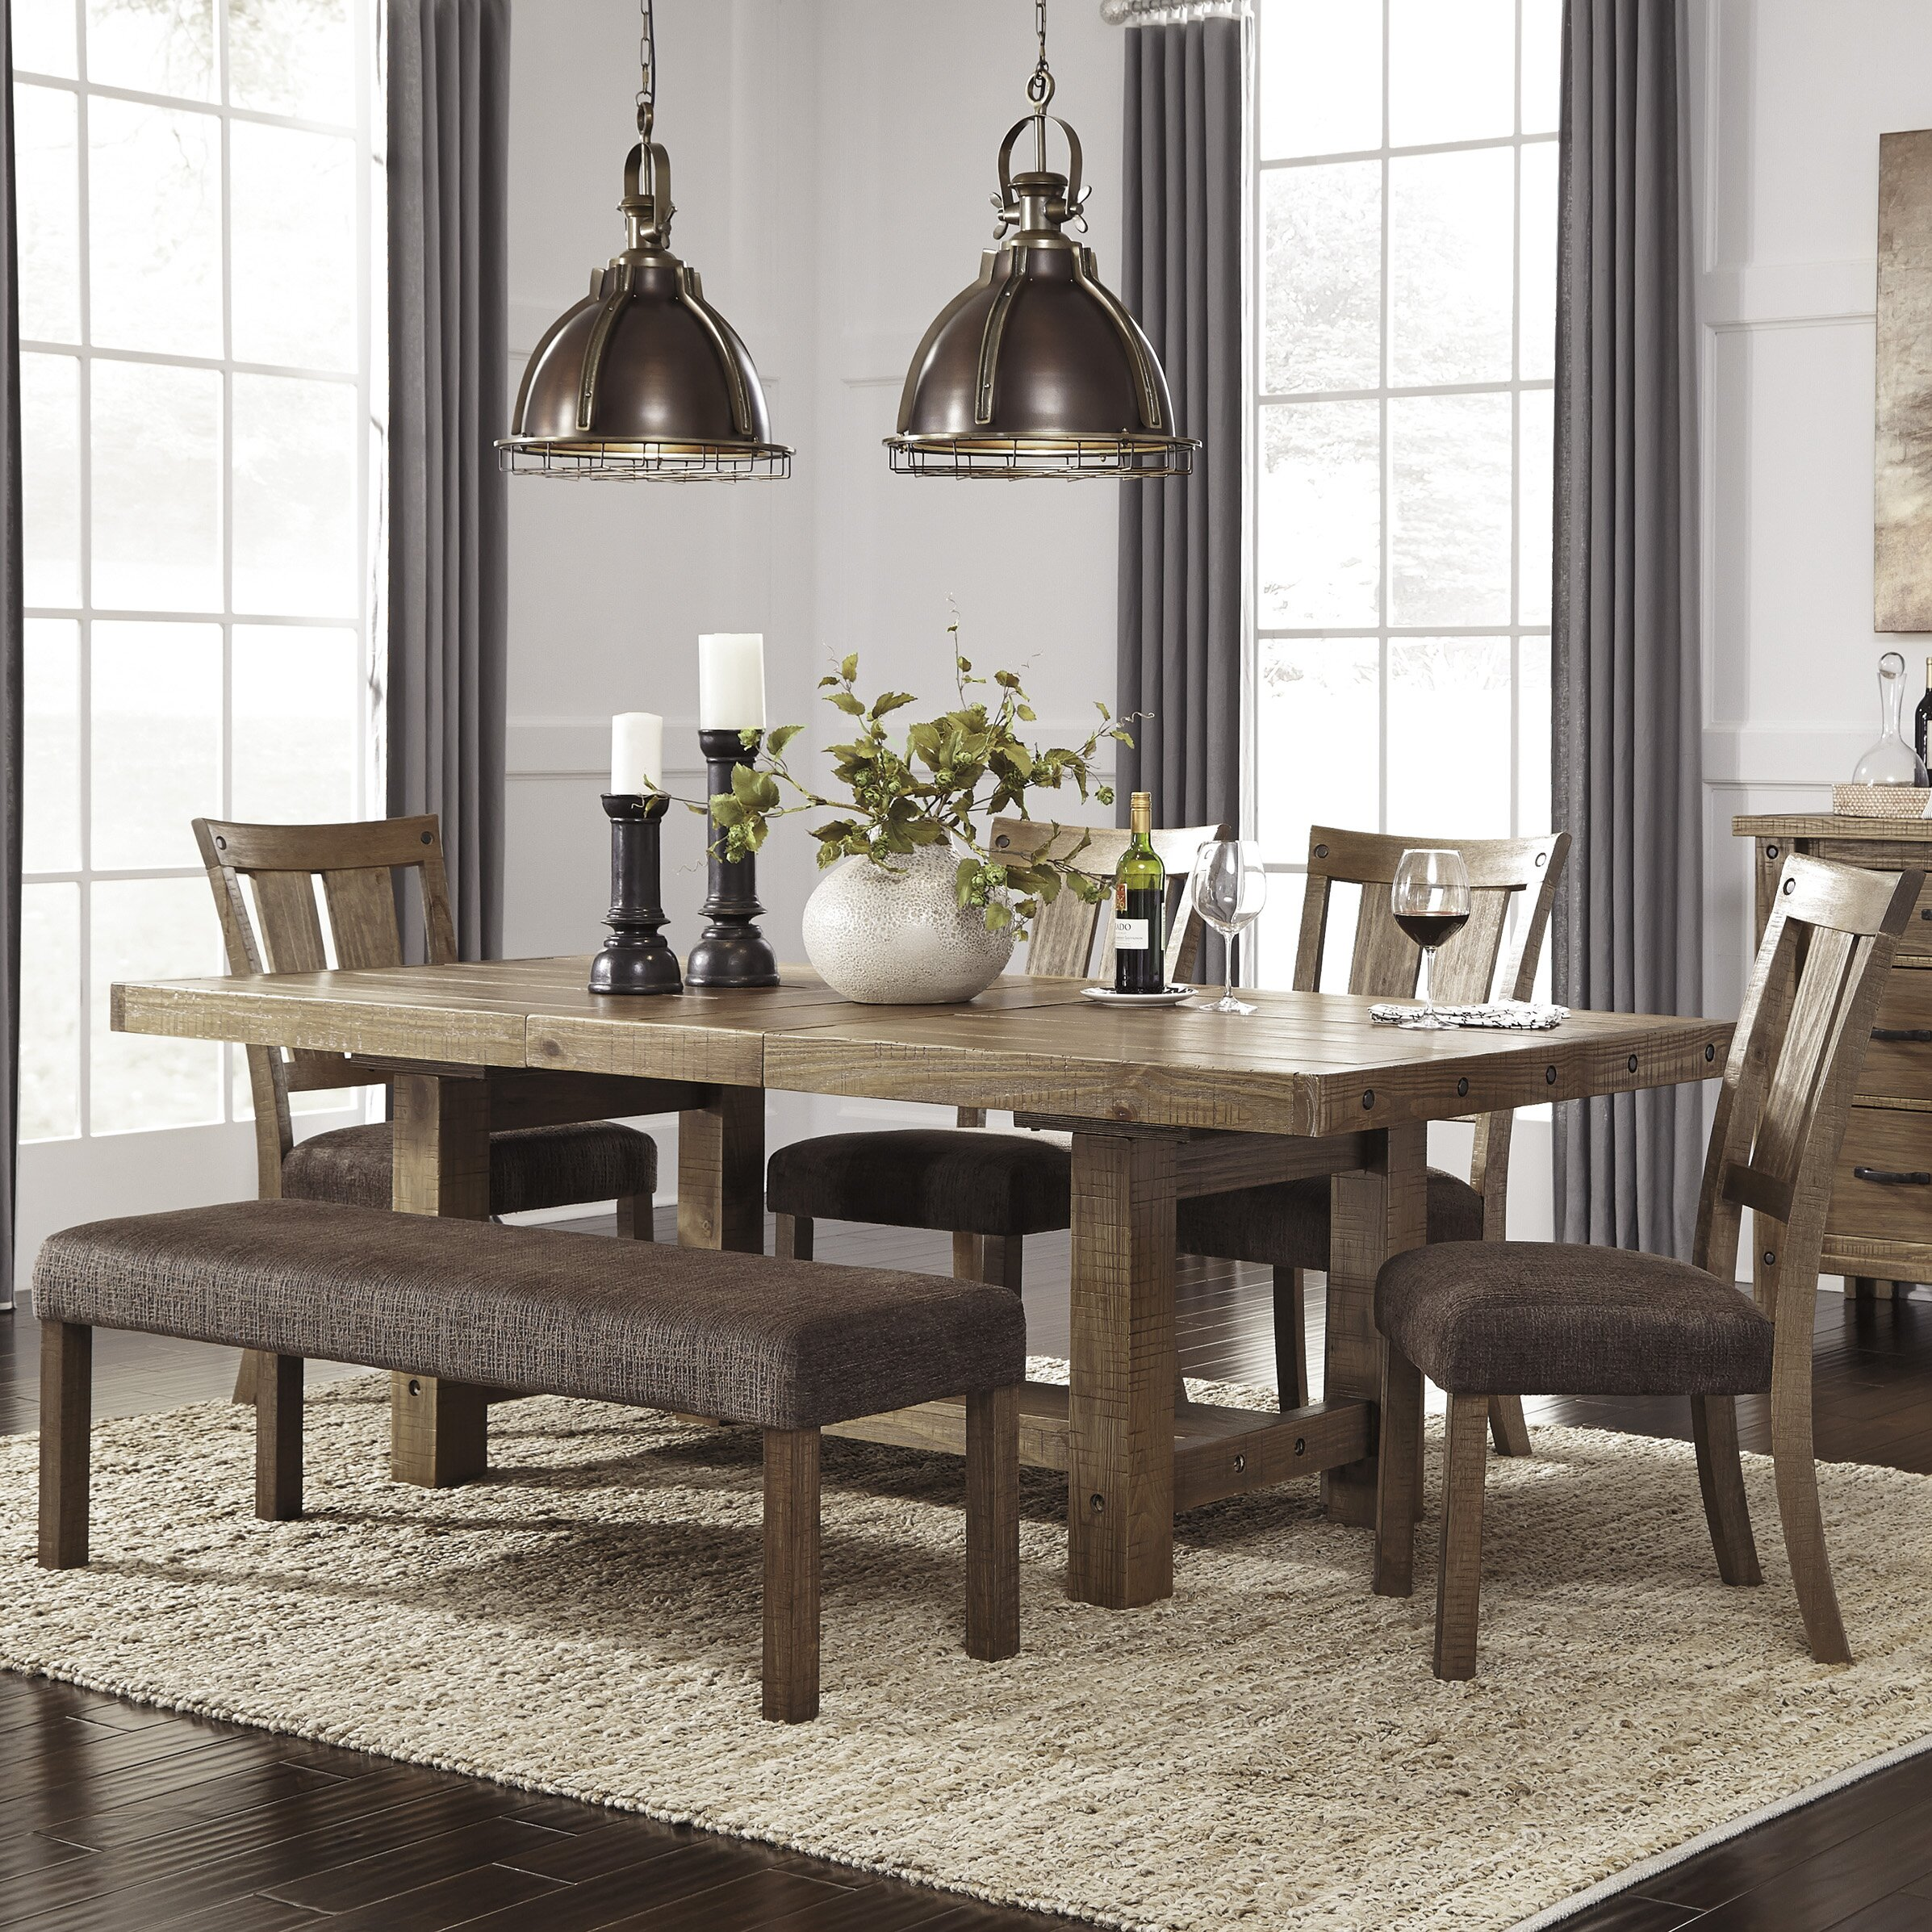 Signature design by ashley 9 piece dining set reviews for Dining room pictures